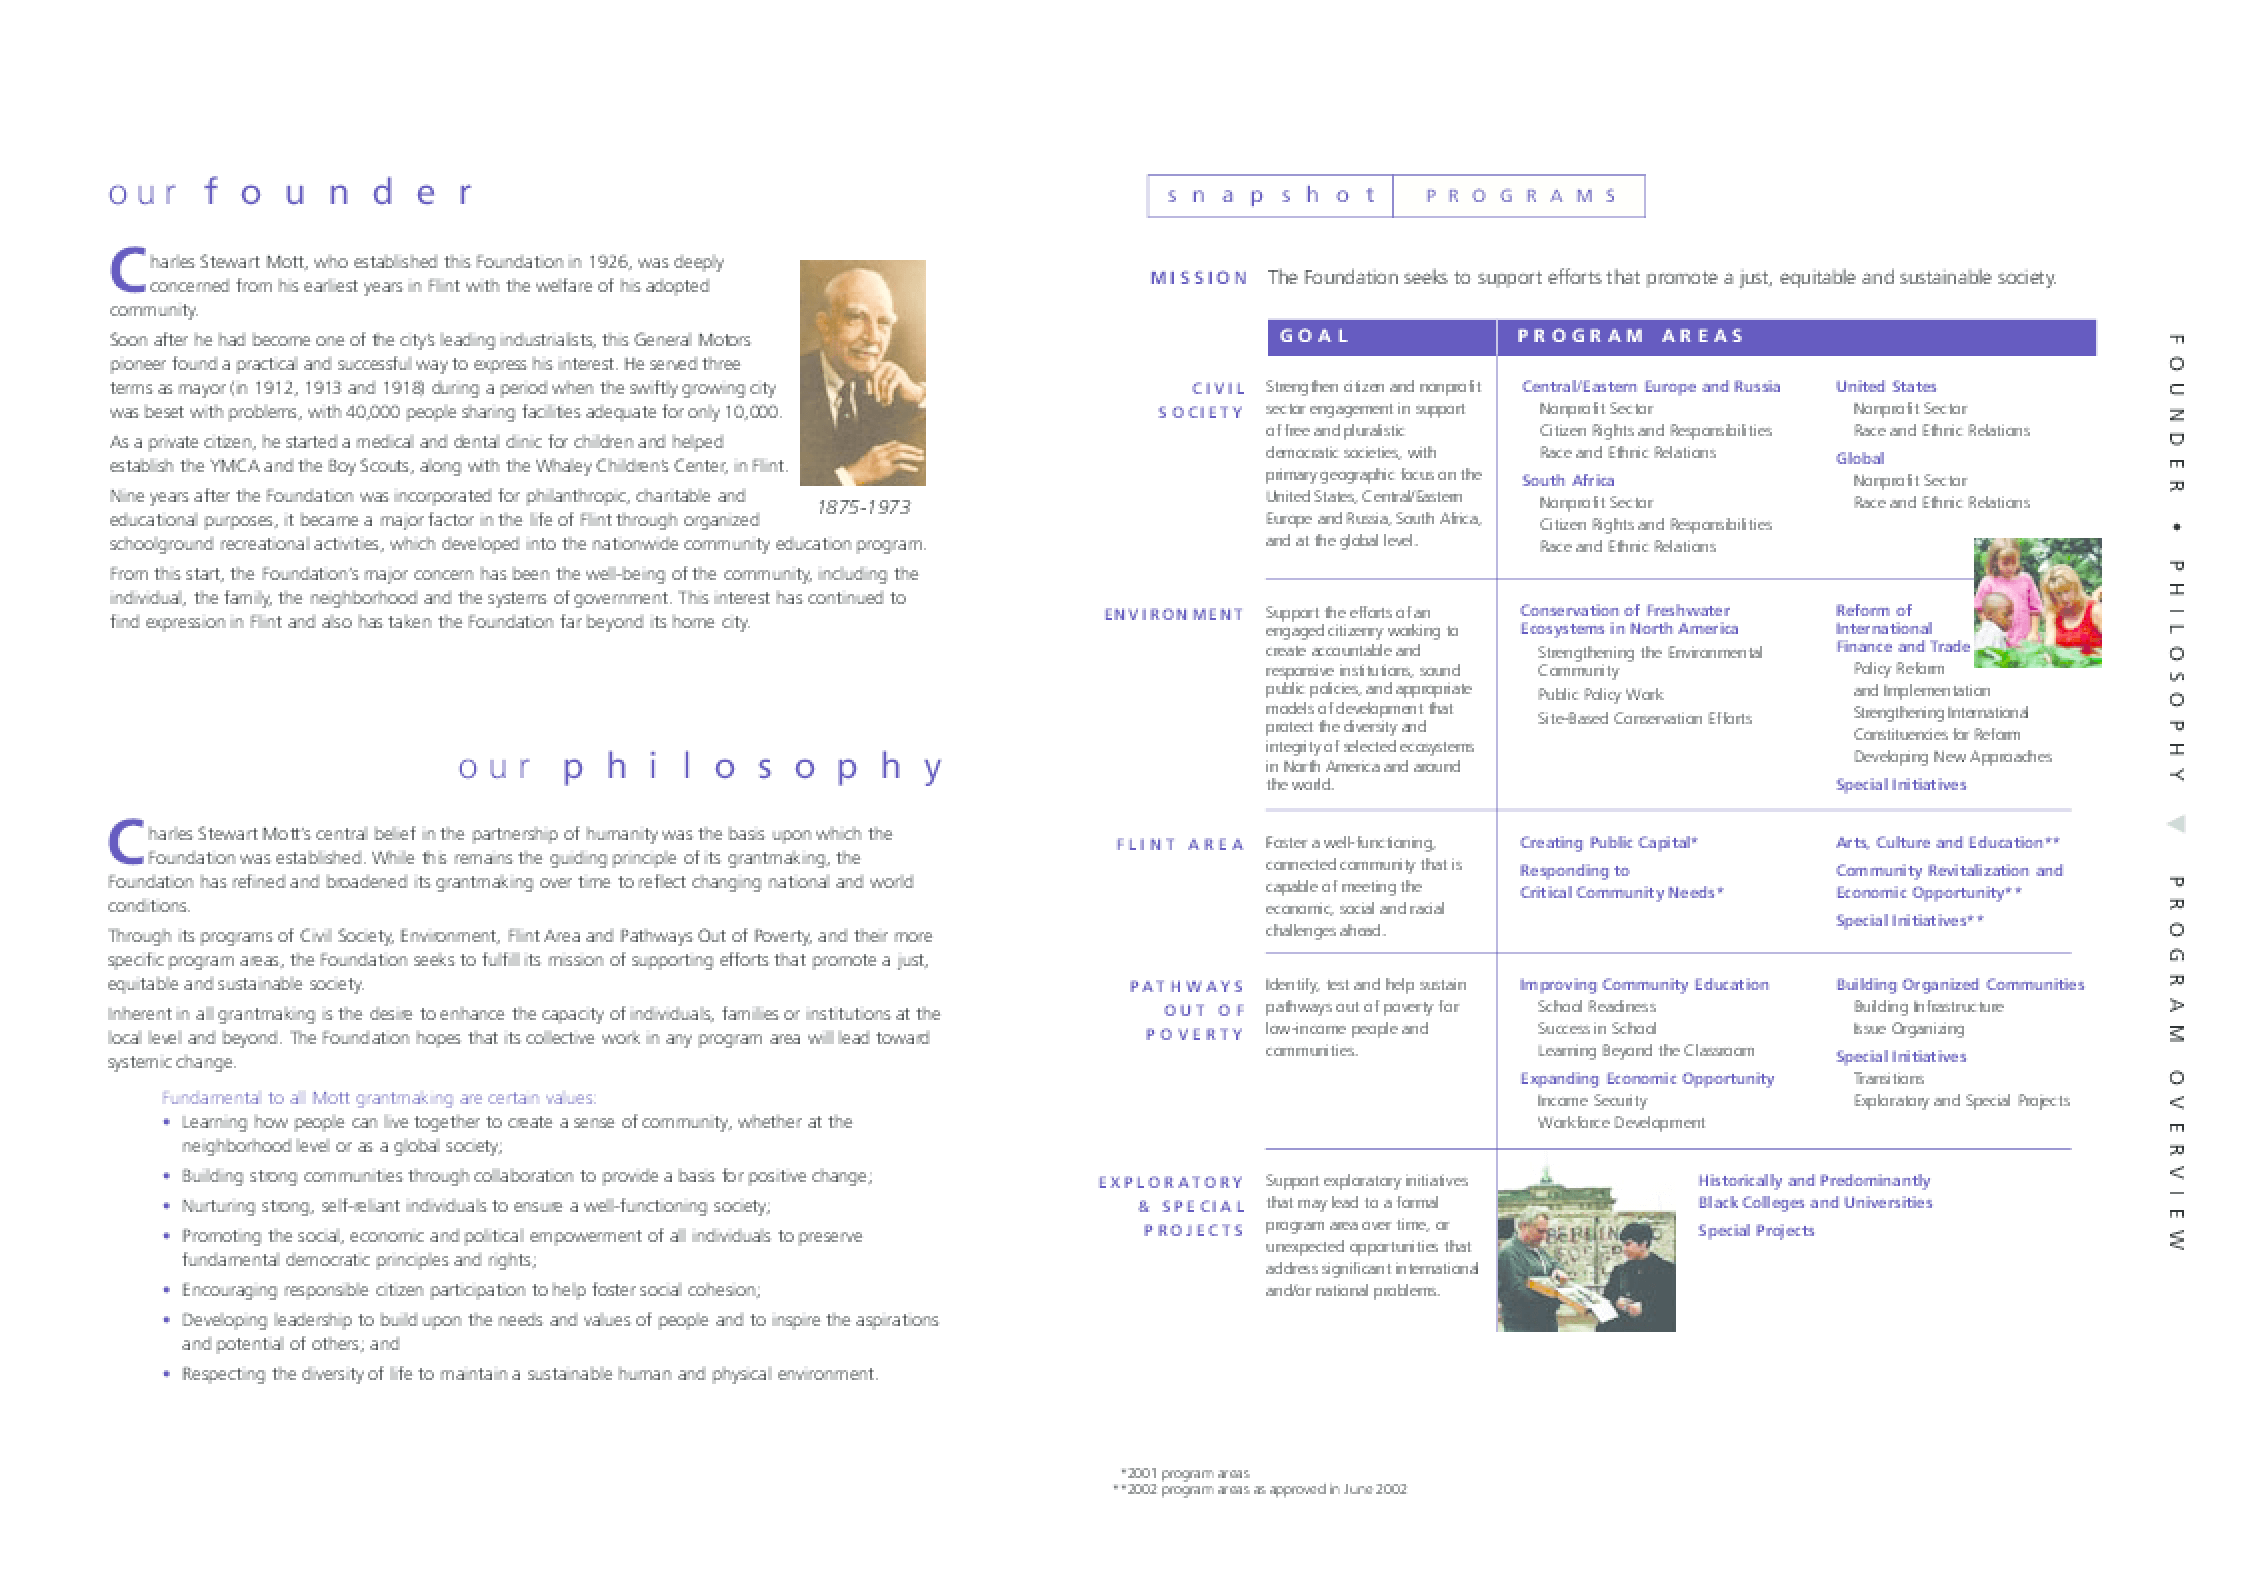 Charles Stewart Mott Foundation - 2001 Annual Report